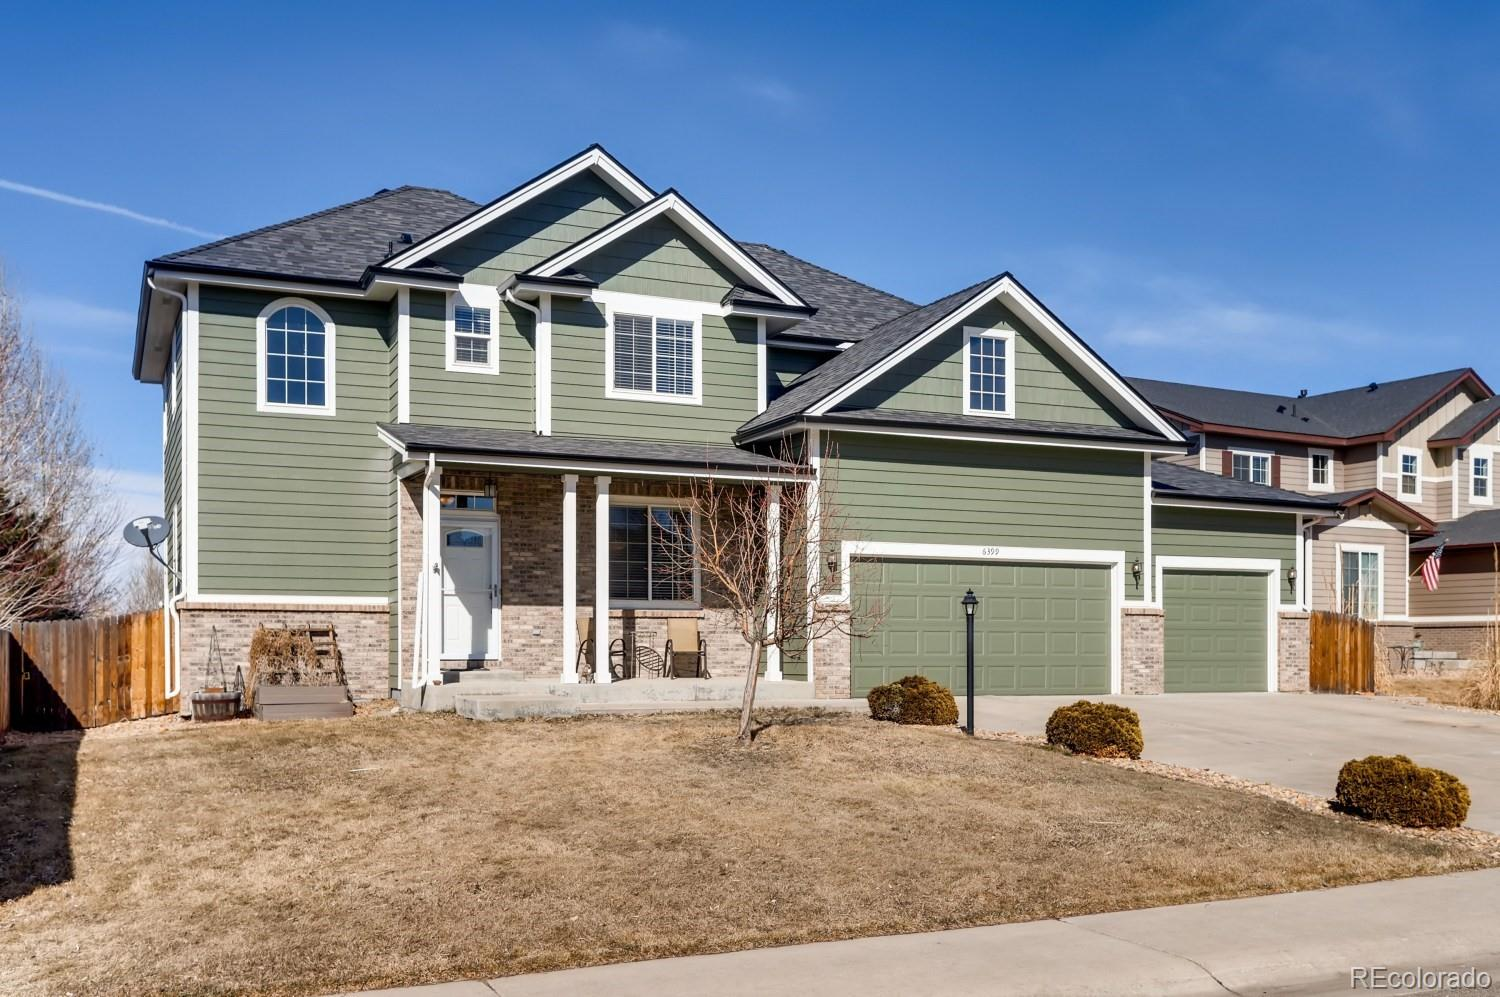 MLS# 7354763 - 1 - 6399 Union Avenue, Firestone, CO 80504